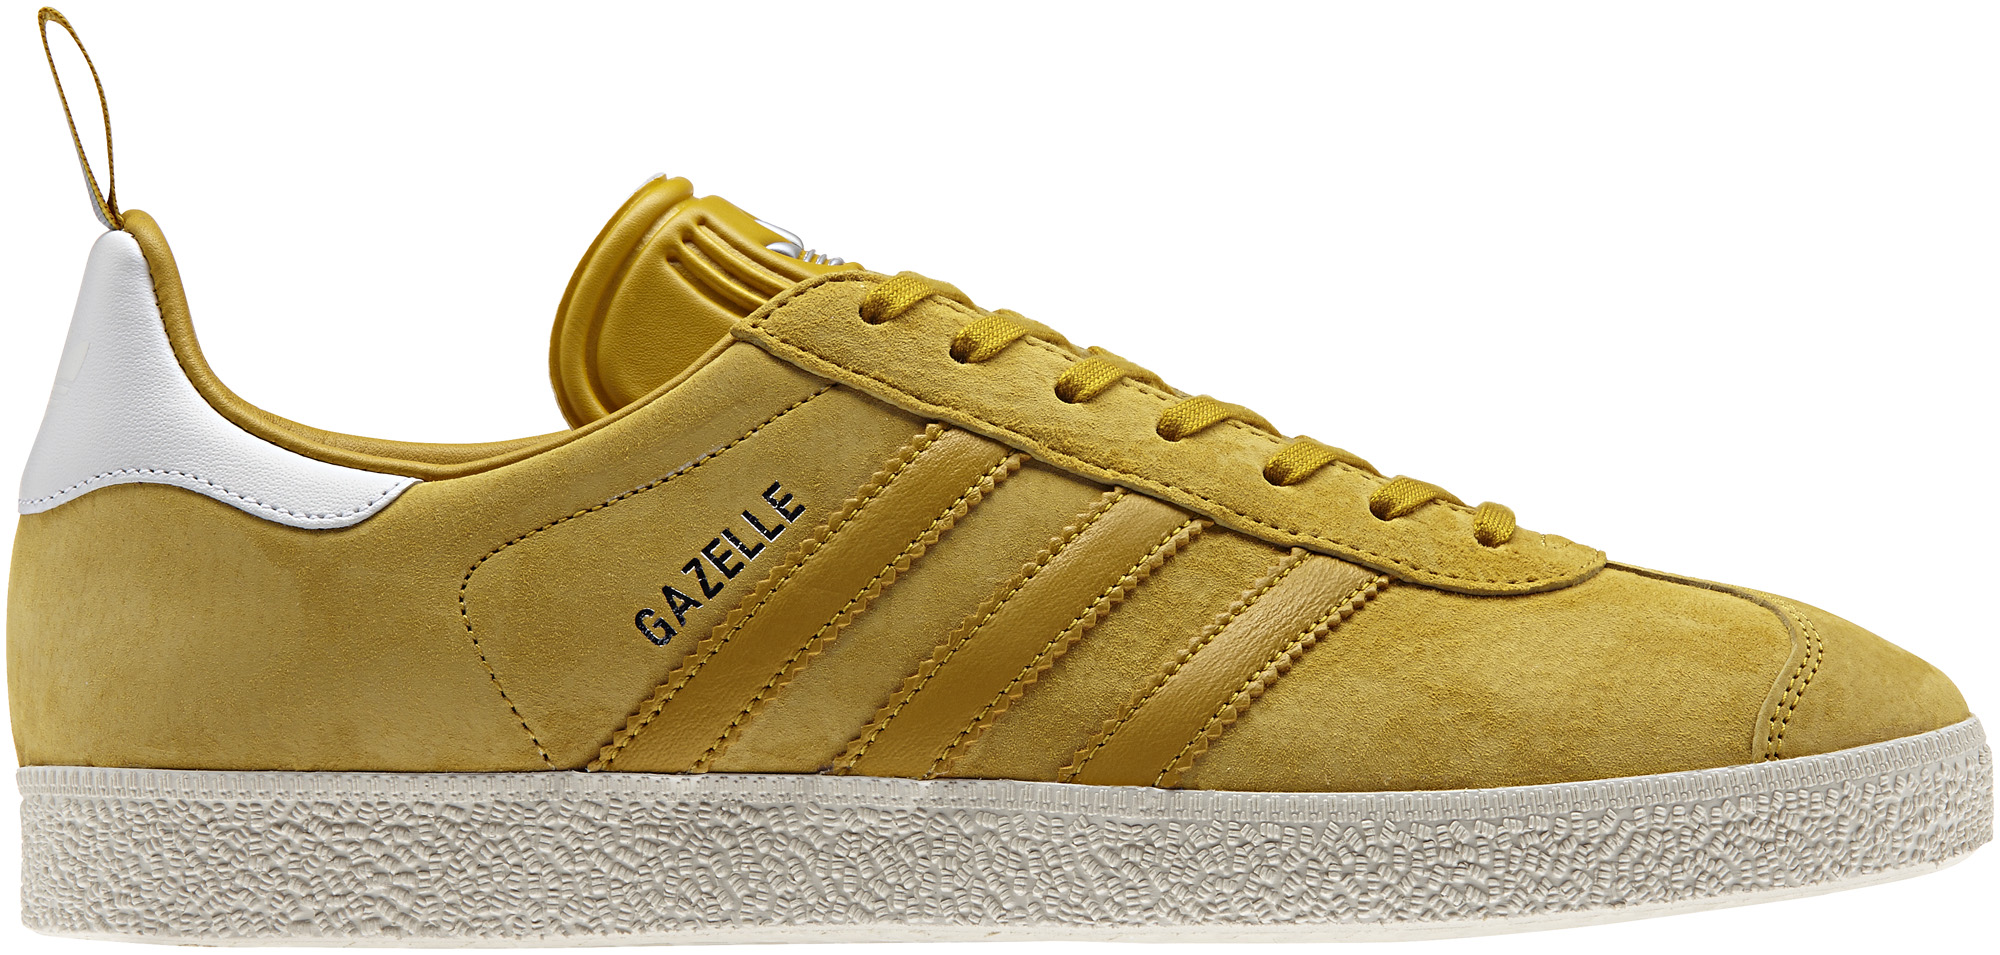 adidas-originals-gazelle-ostrich-pack-4